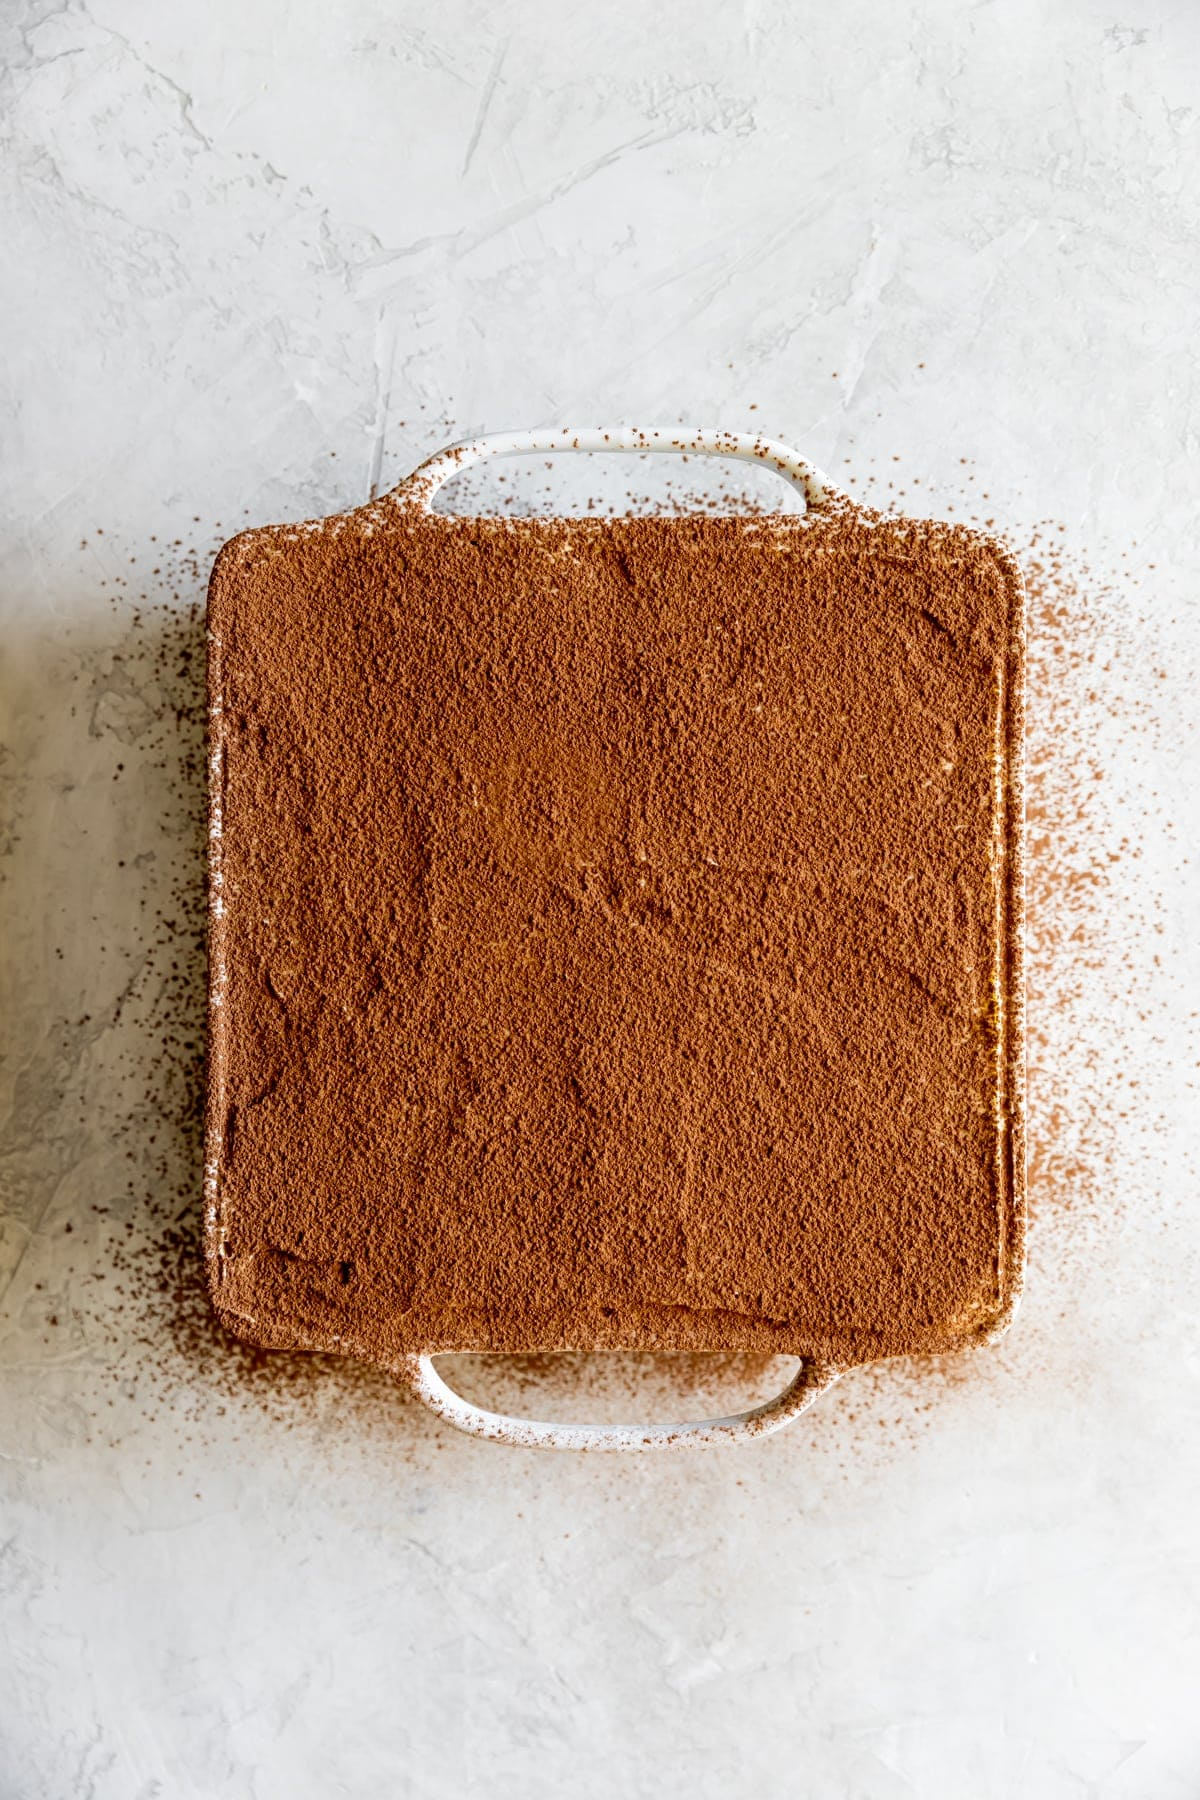 cocoa dusted over the tiramisu before serving